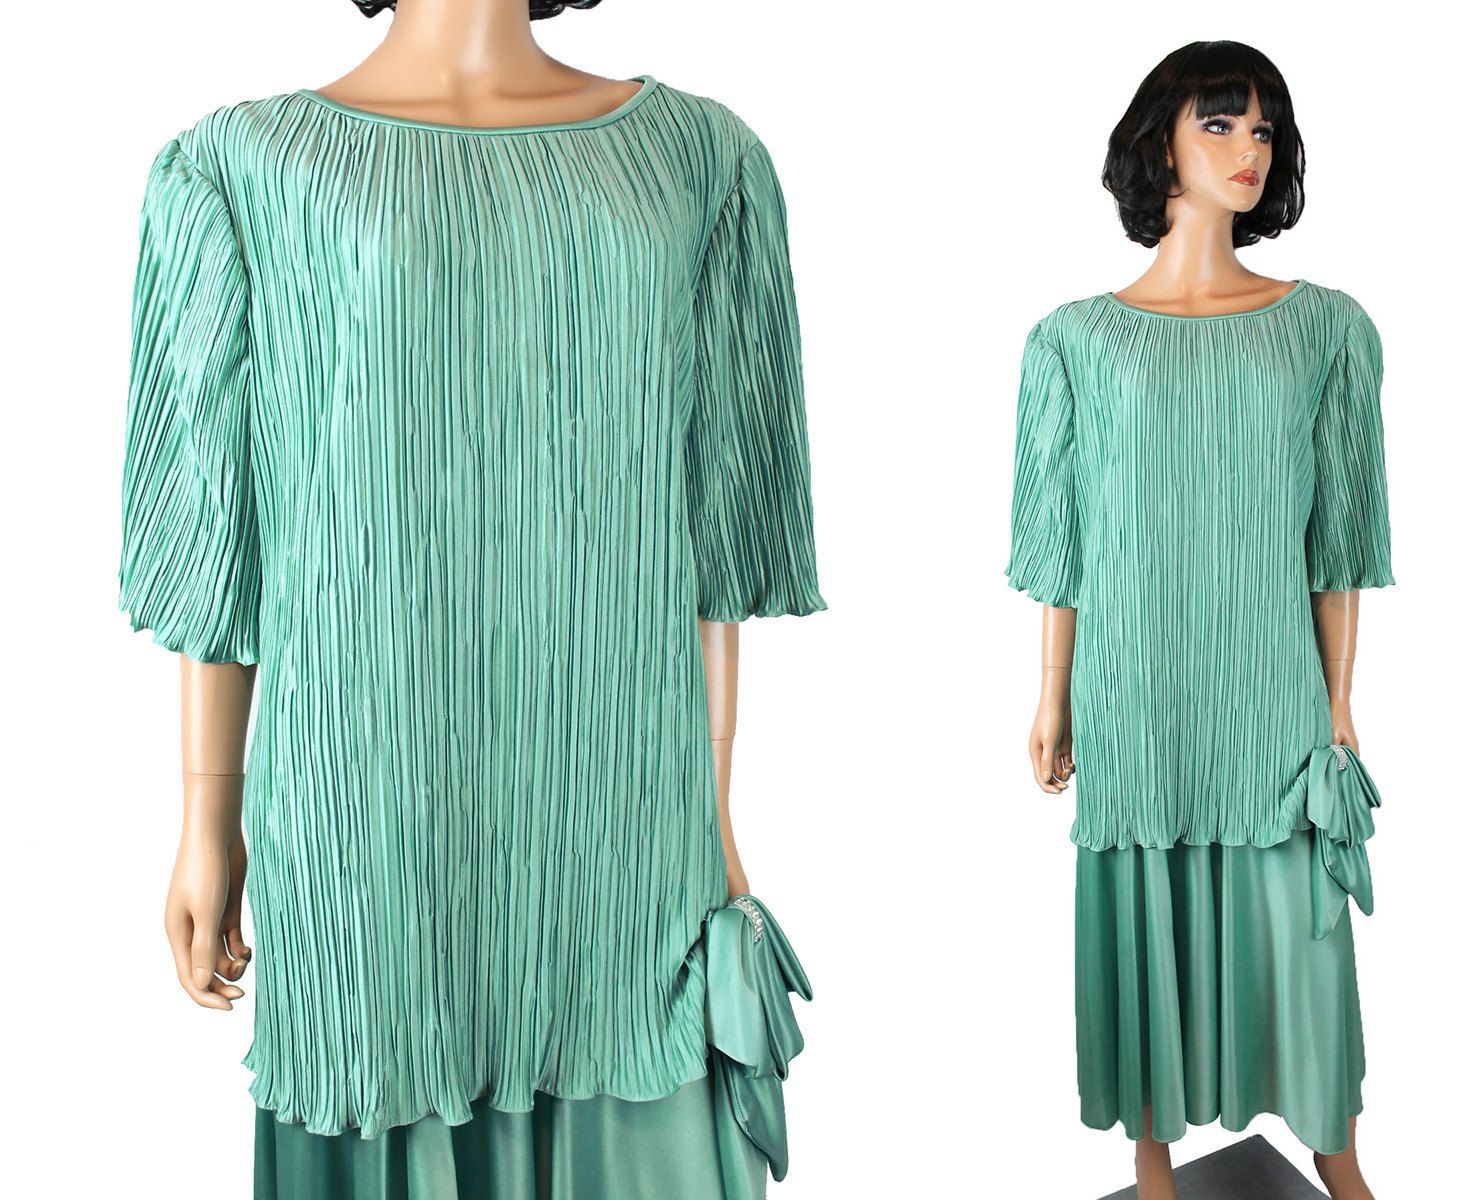 80s Prom Dress 20 XXL 2X Vintage Seafoam Green Pleated Gown ...